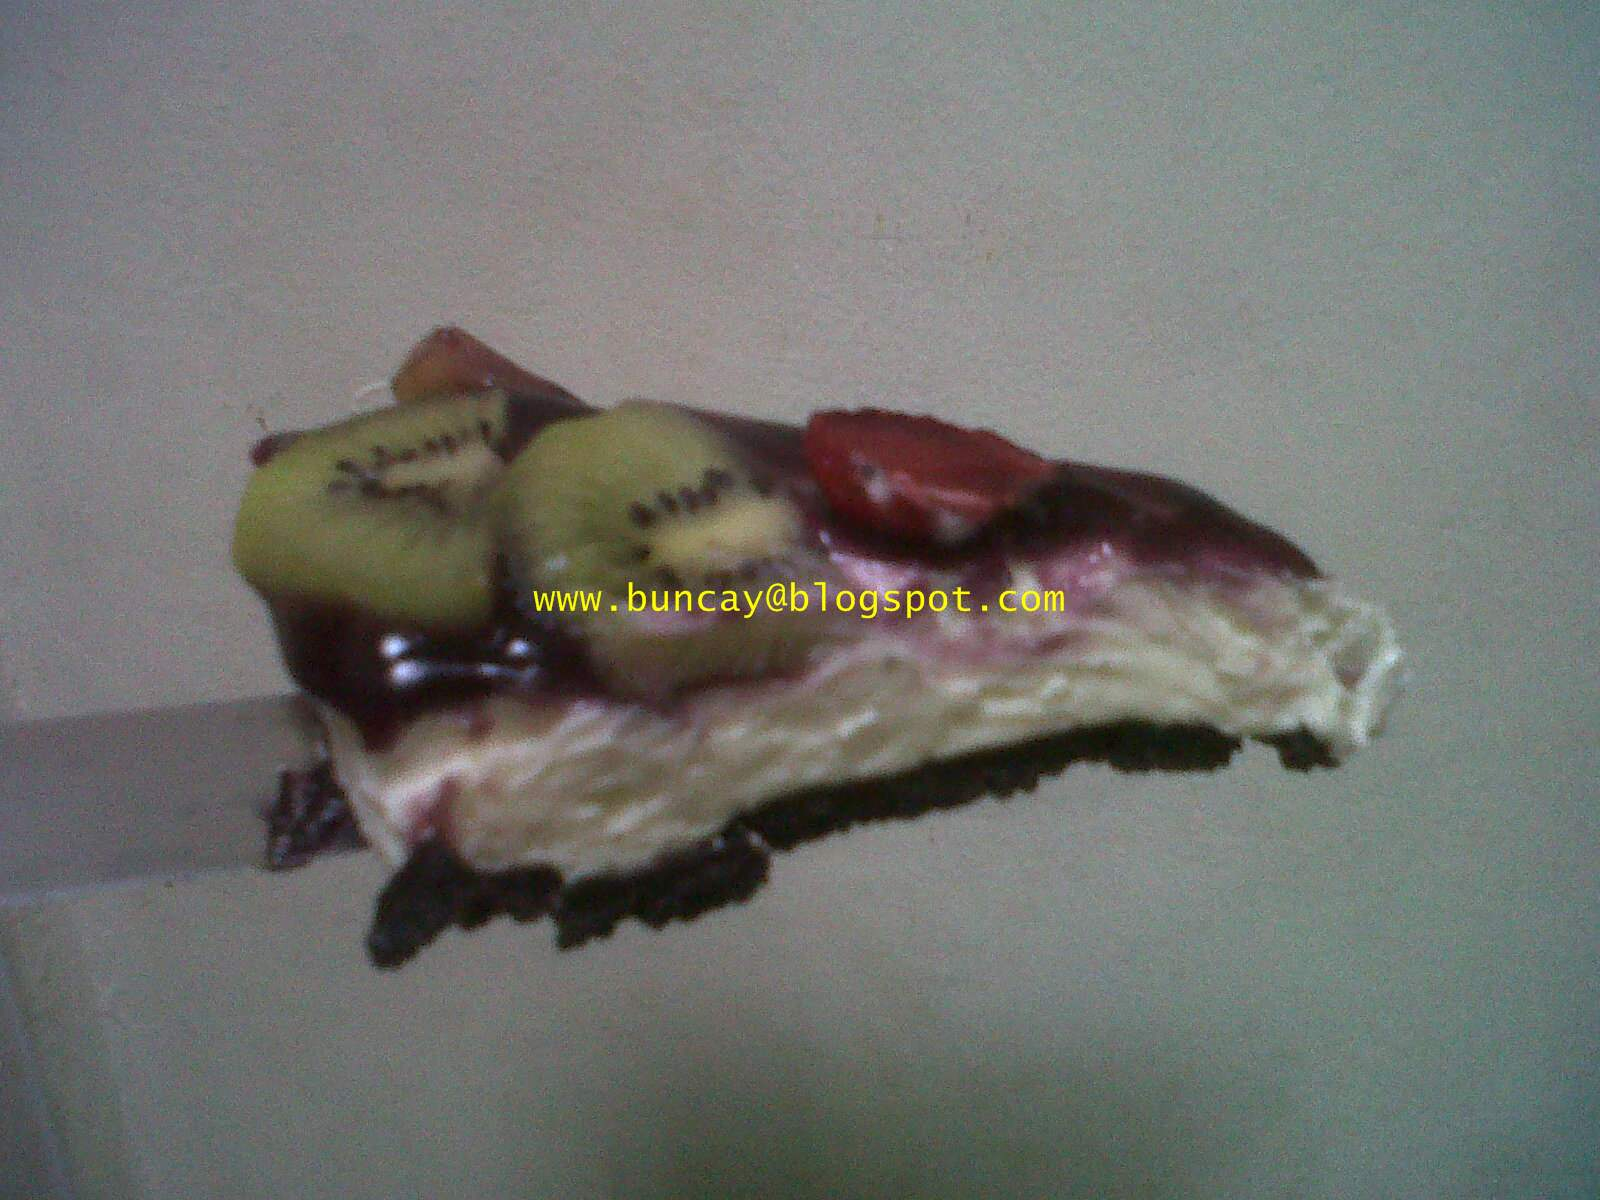 Buncay's creation: Unbaked Cheese Cake